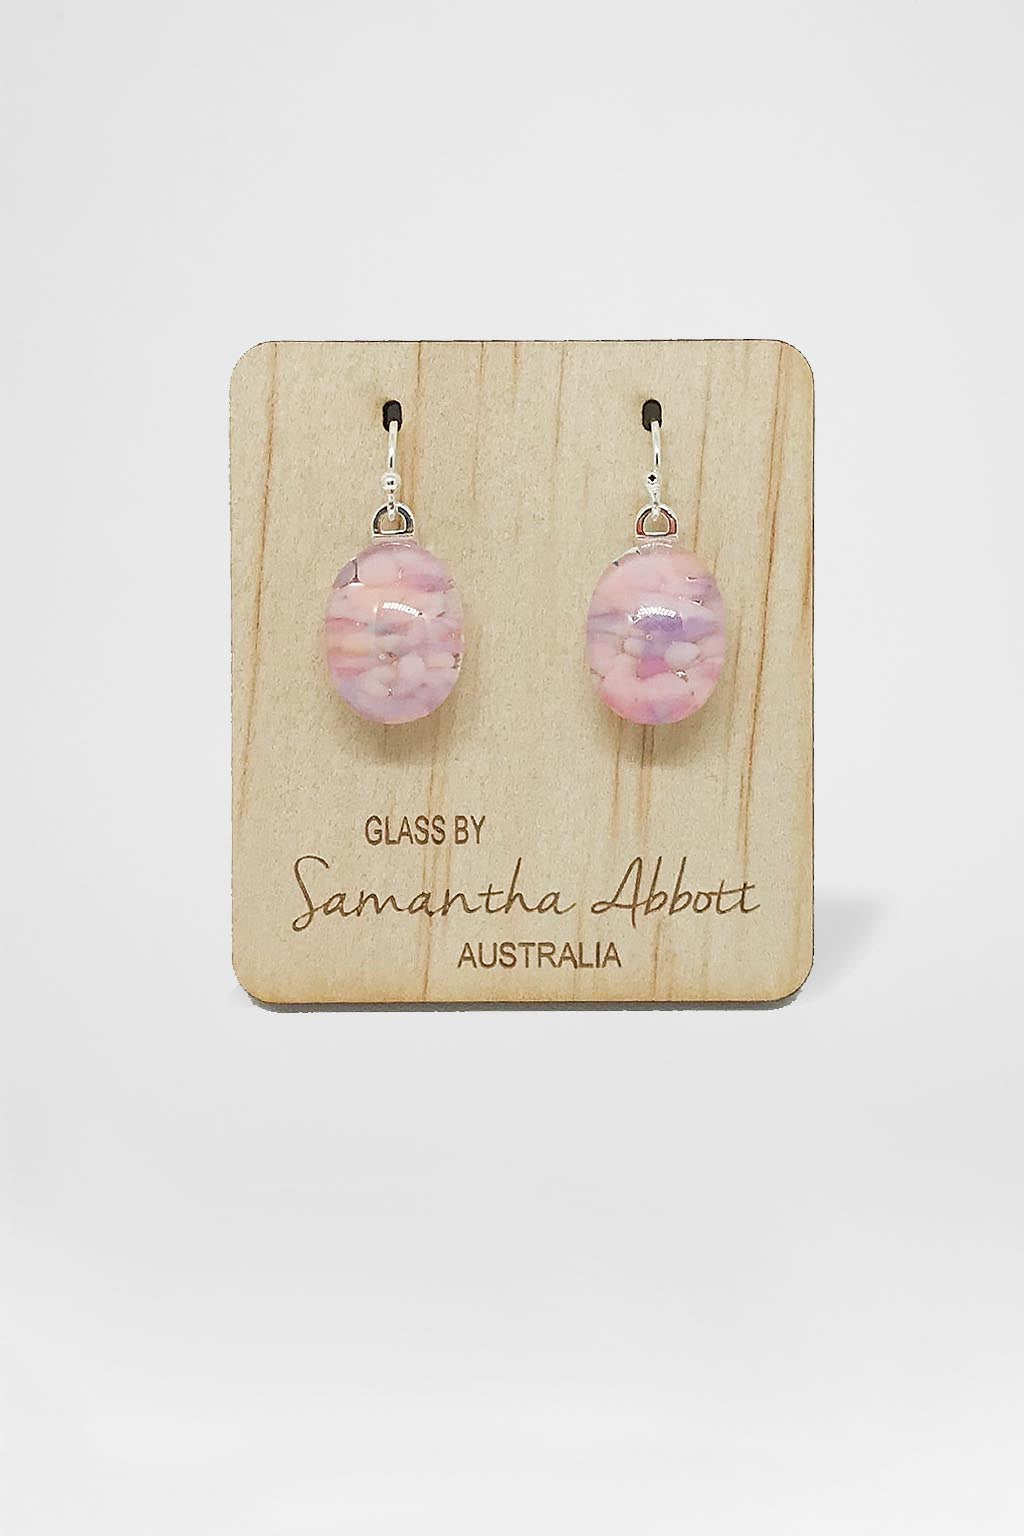 Samantha Abbott Glass-Oval Drop Earring - Pink Droplets-Mott and Mulberry